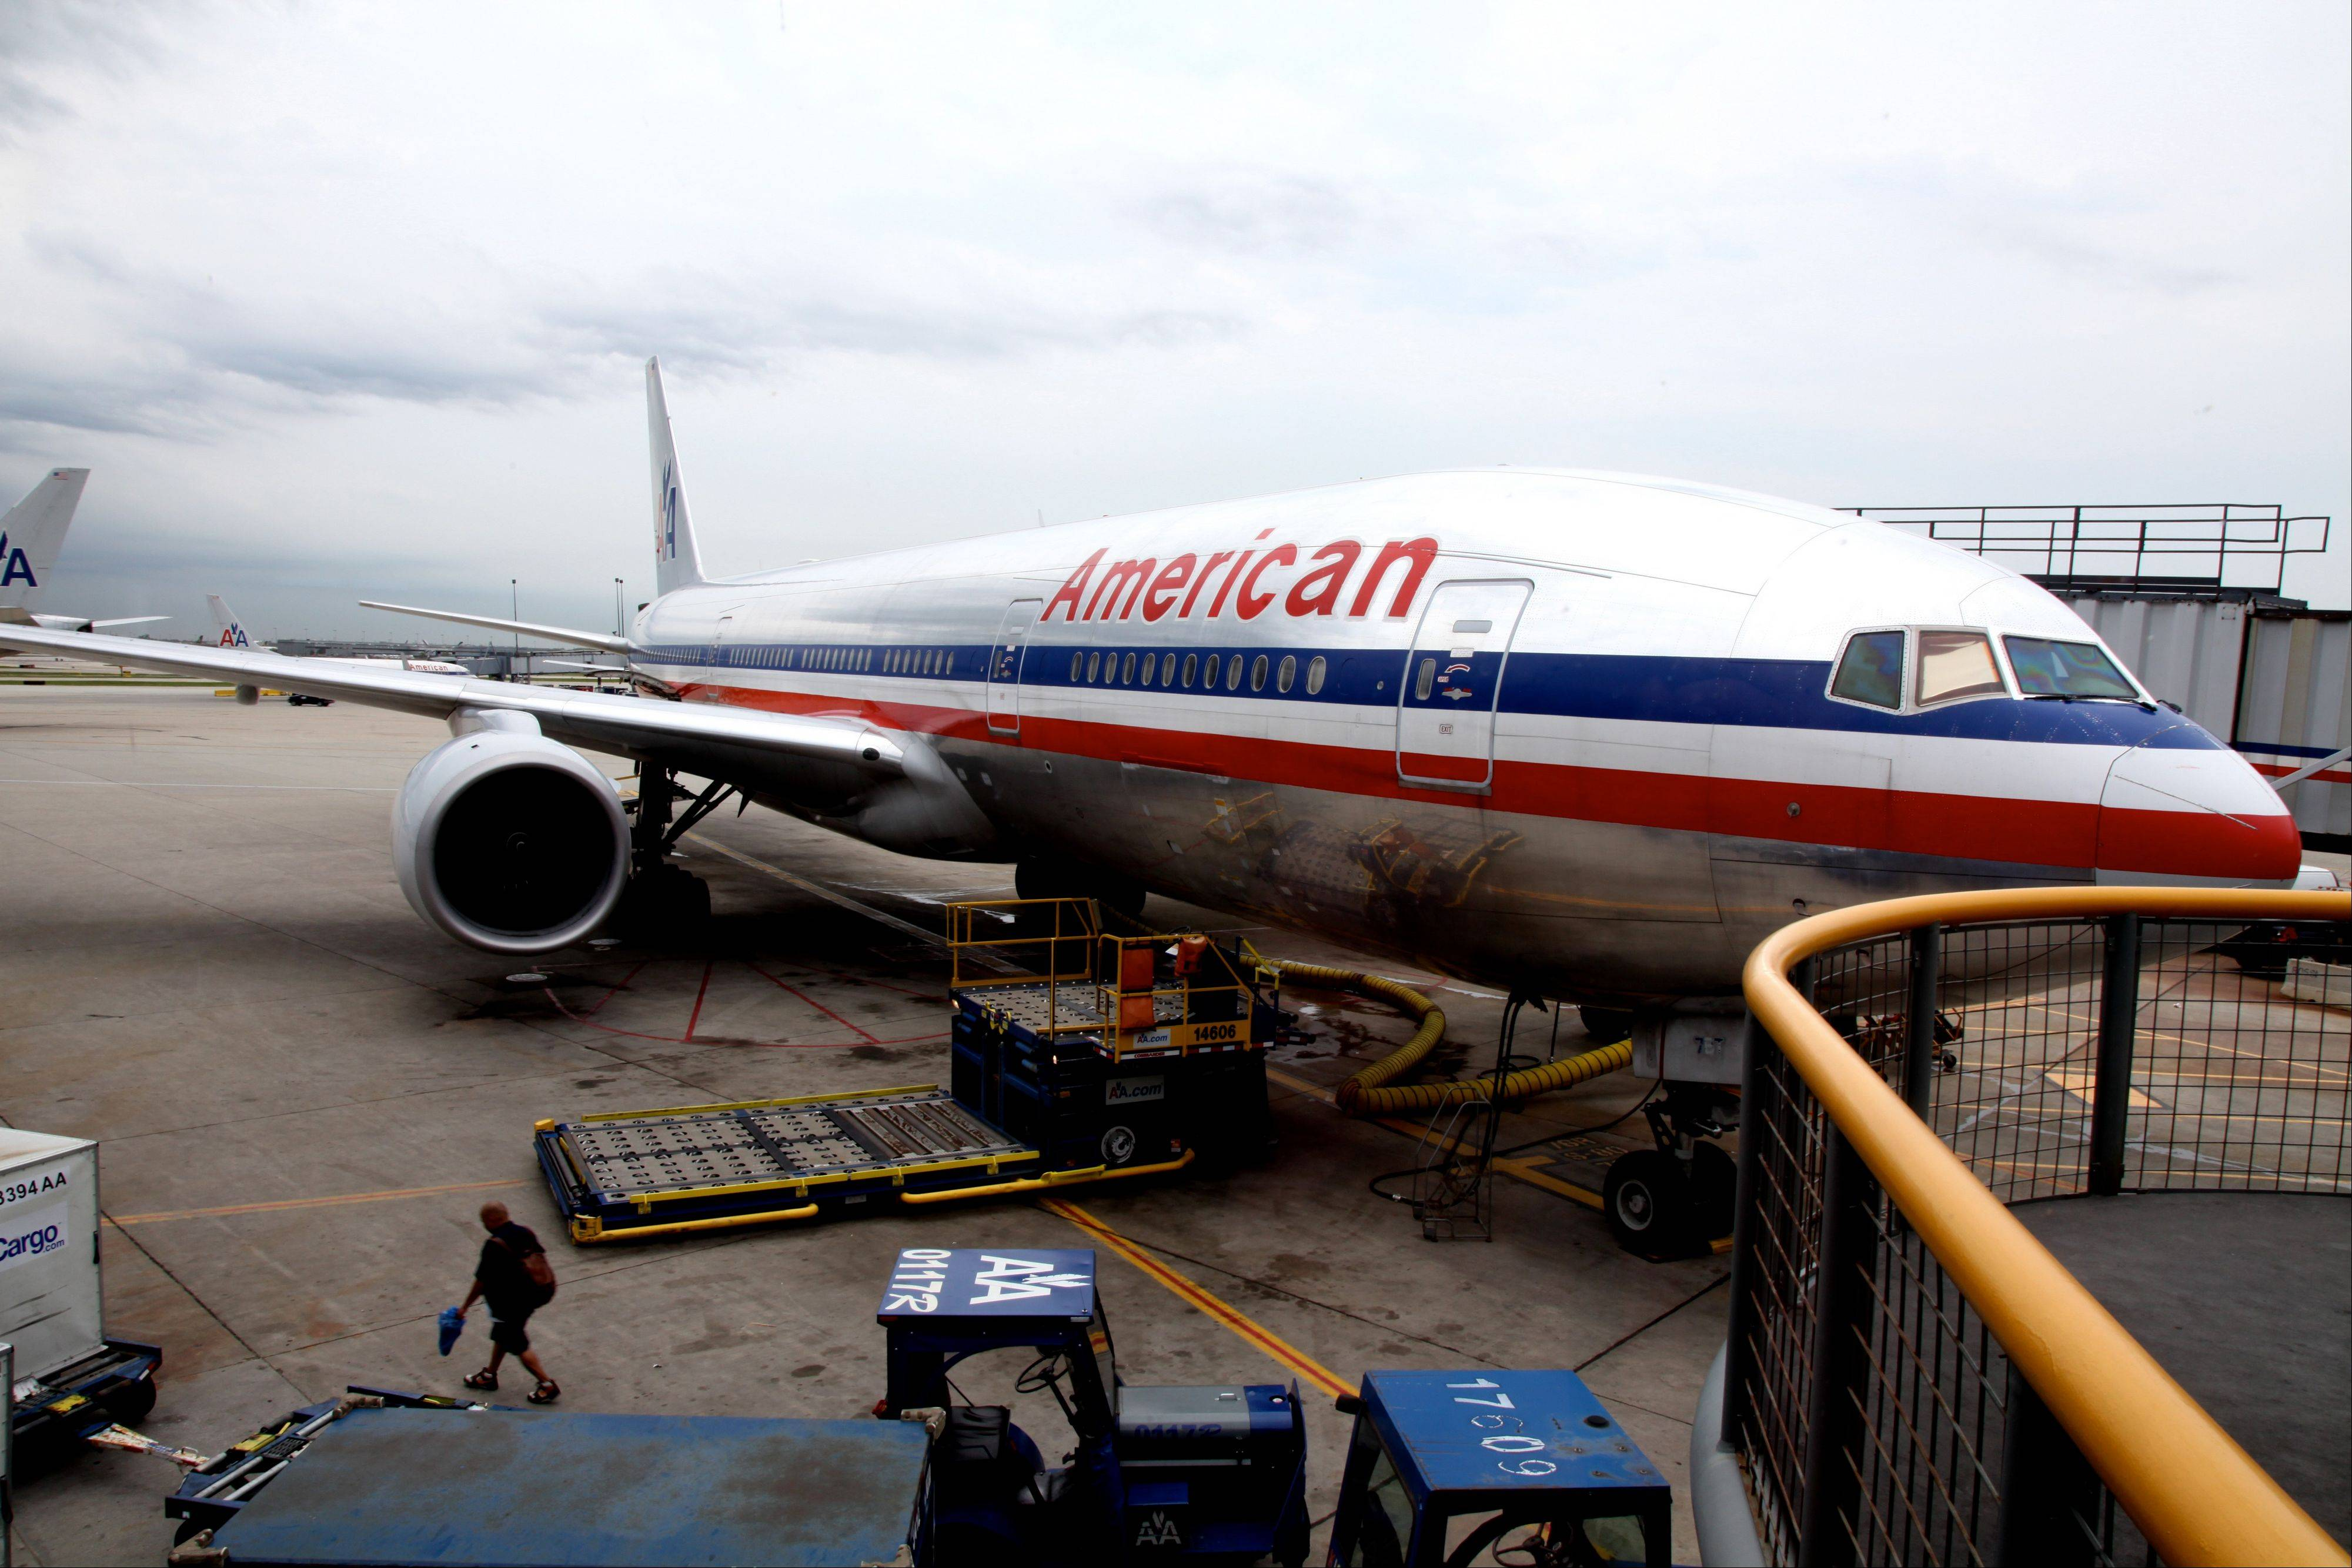 An American Airlines plane is parked at the terminal at O'Hare International airport. The government is delaying some airline consumer-protection rules to give the airlines more time to prepare for them.